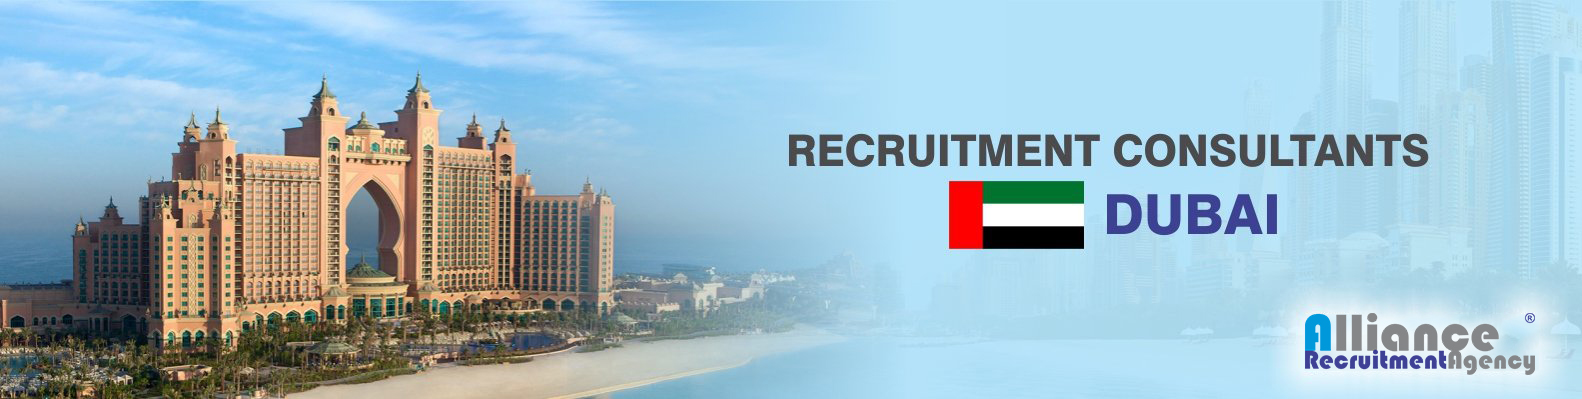 recruitment consultant dubai